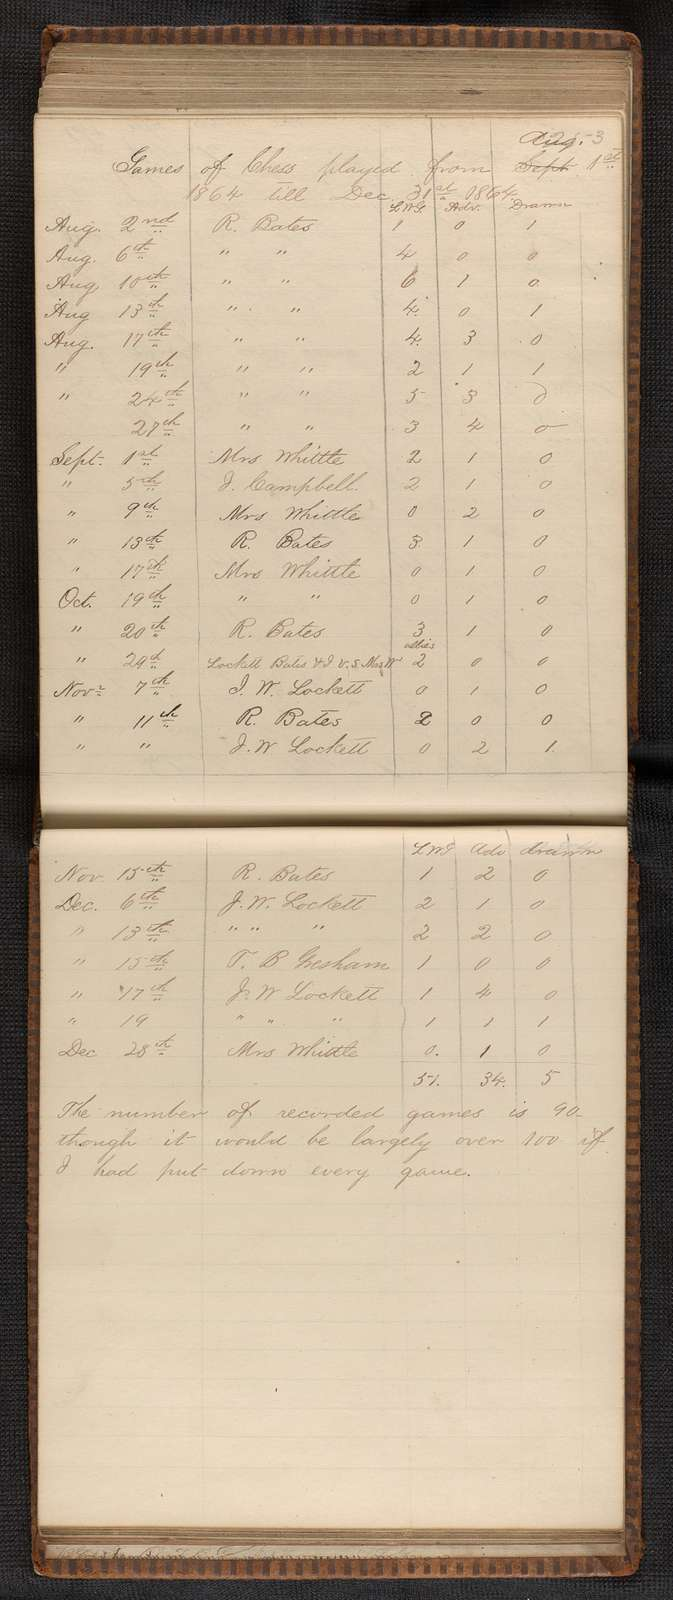 Lewis H. Machen Family Papers: Diaries and Diary Transcriptions, 1860-1865; Diaries; Gresham, LeRoy Wiley; 1864, 1 Jan.-1865, 8 Jan.